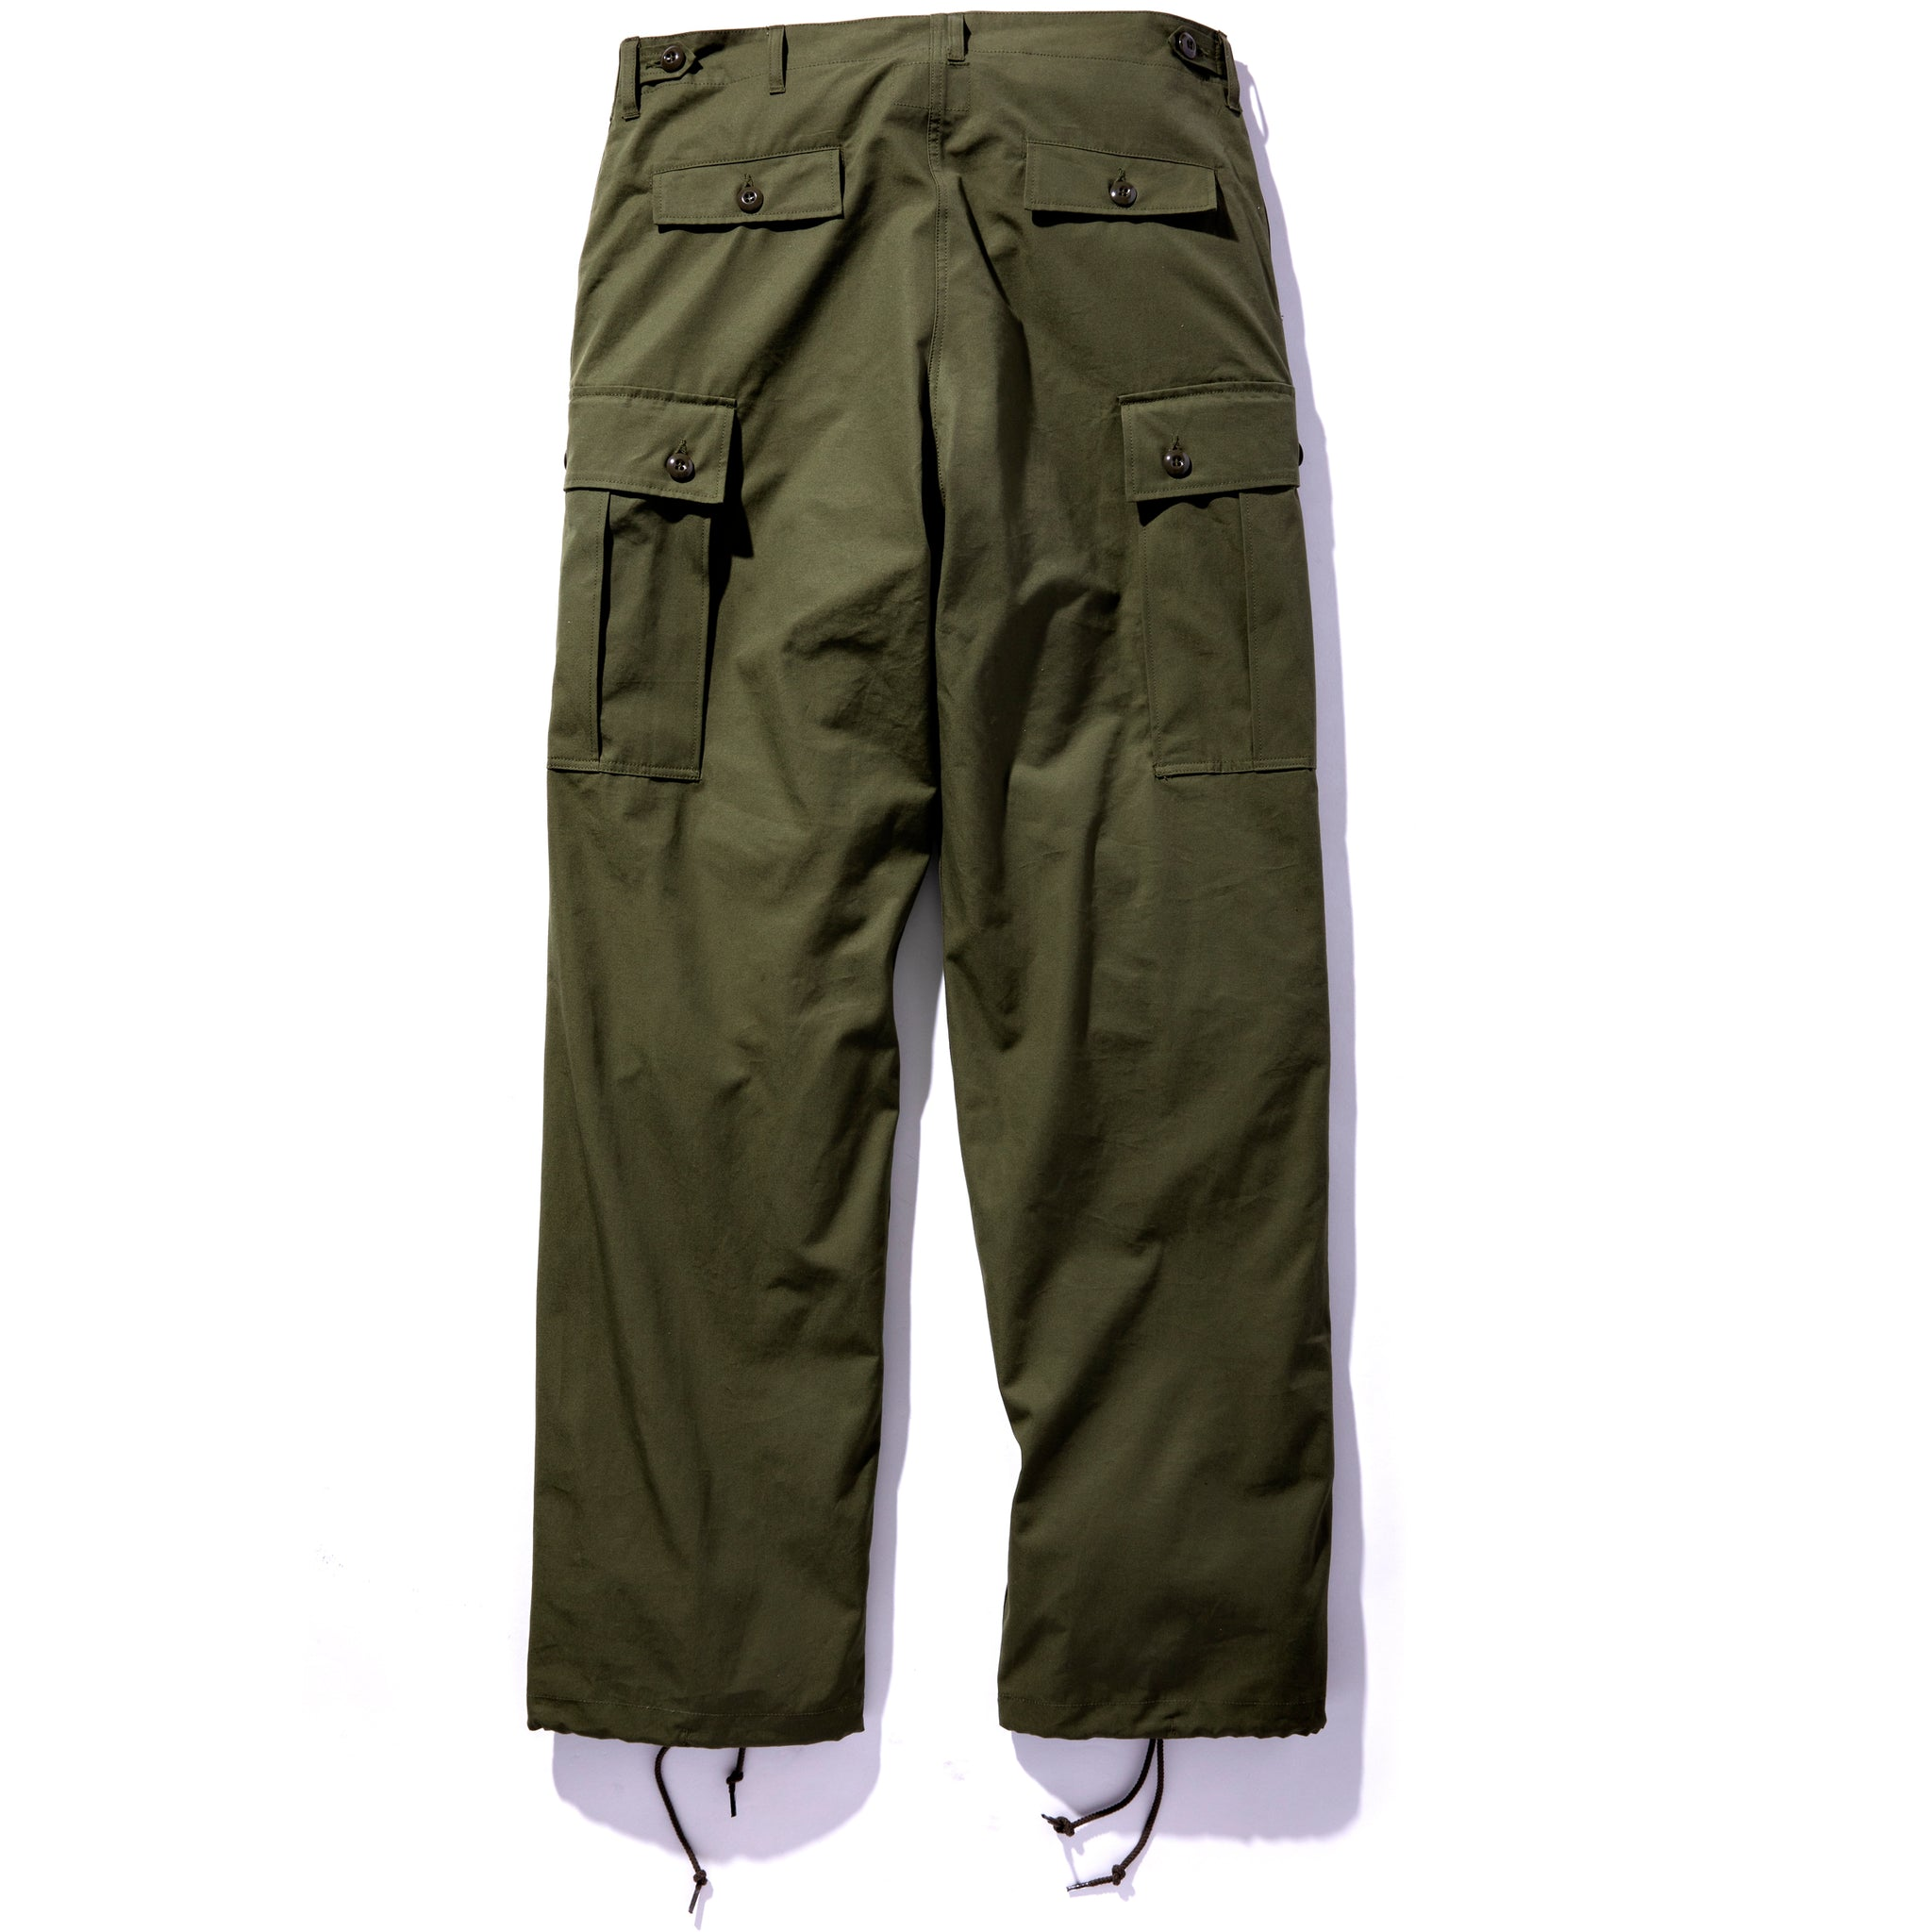 TROUSER'S, MEN'S, COMBAT TROPICAL